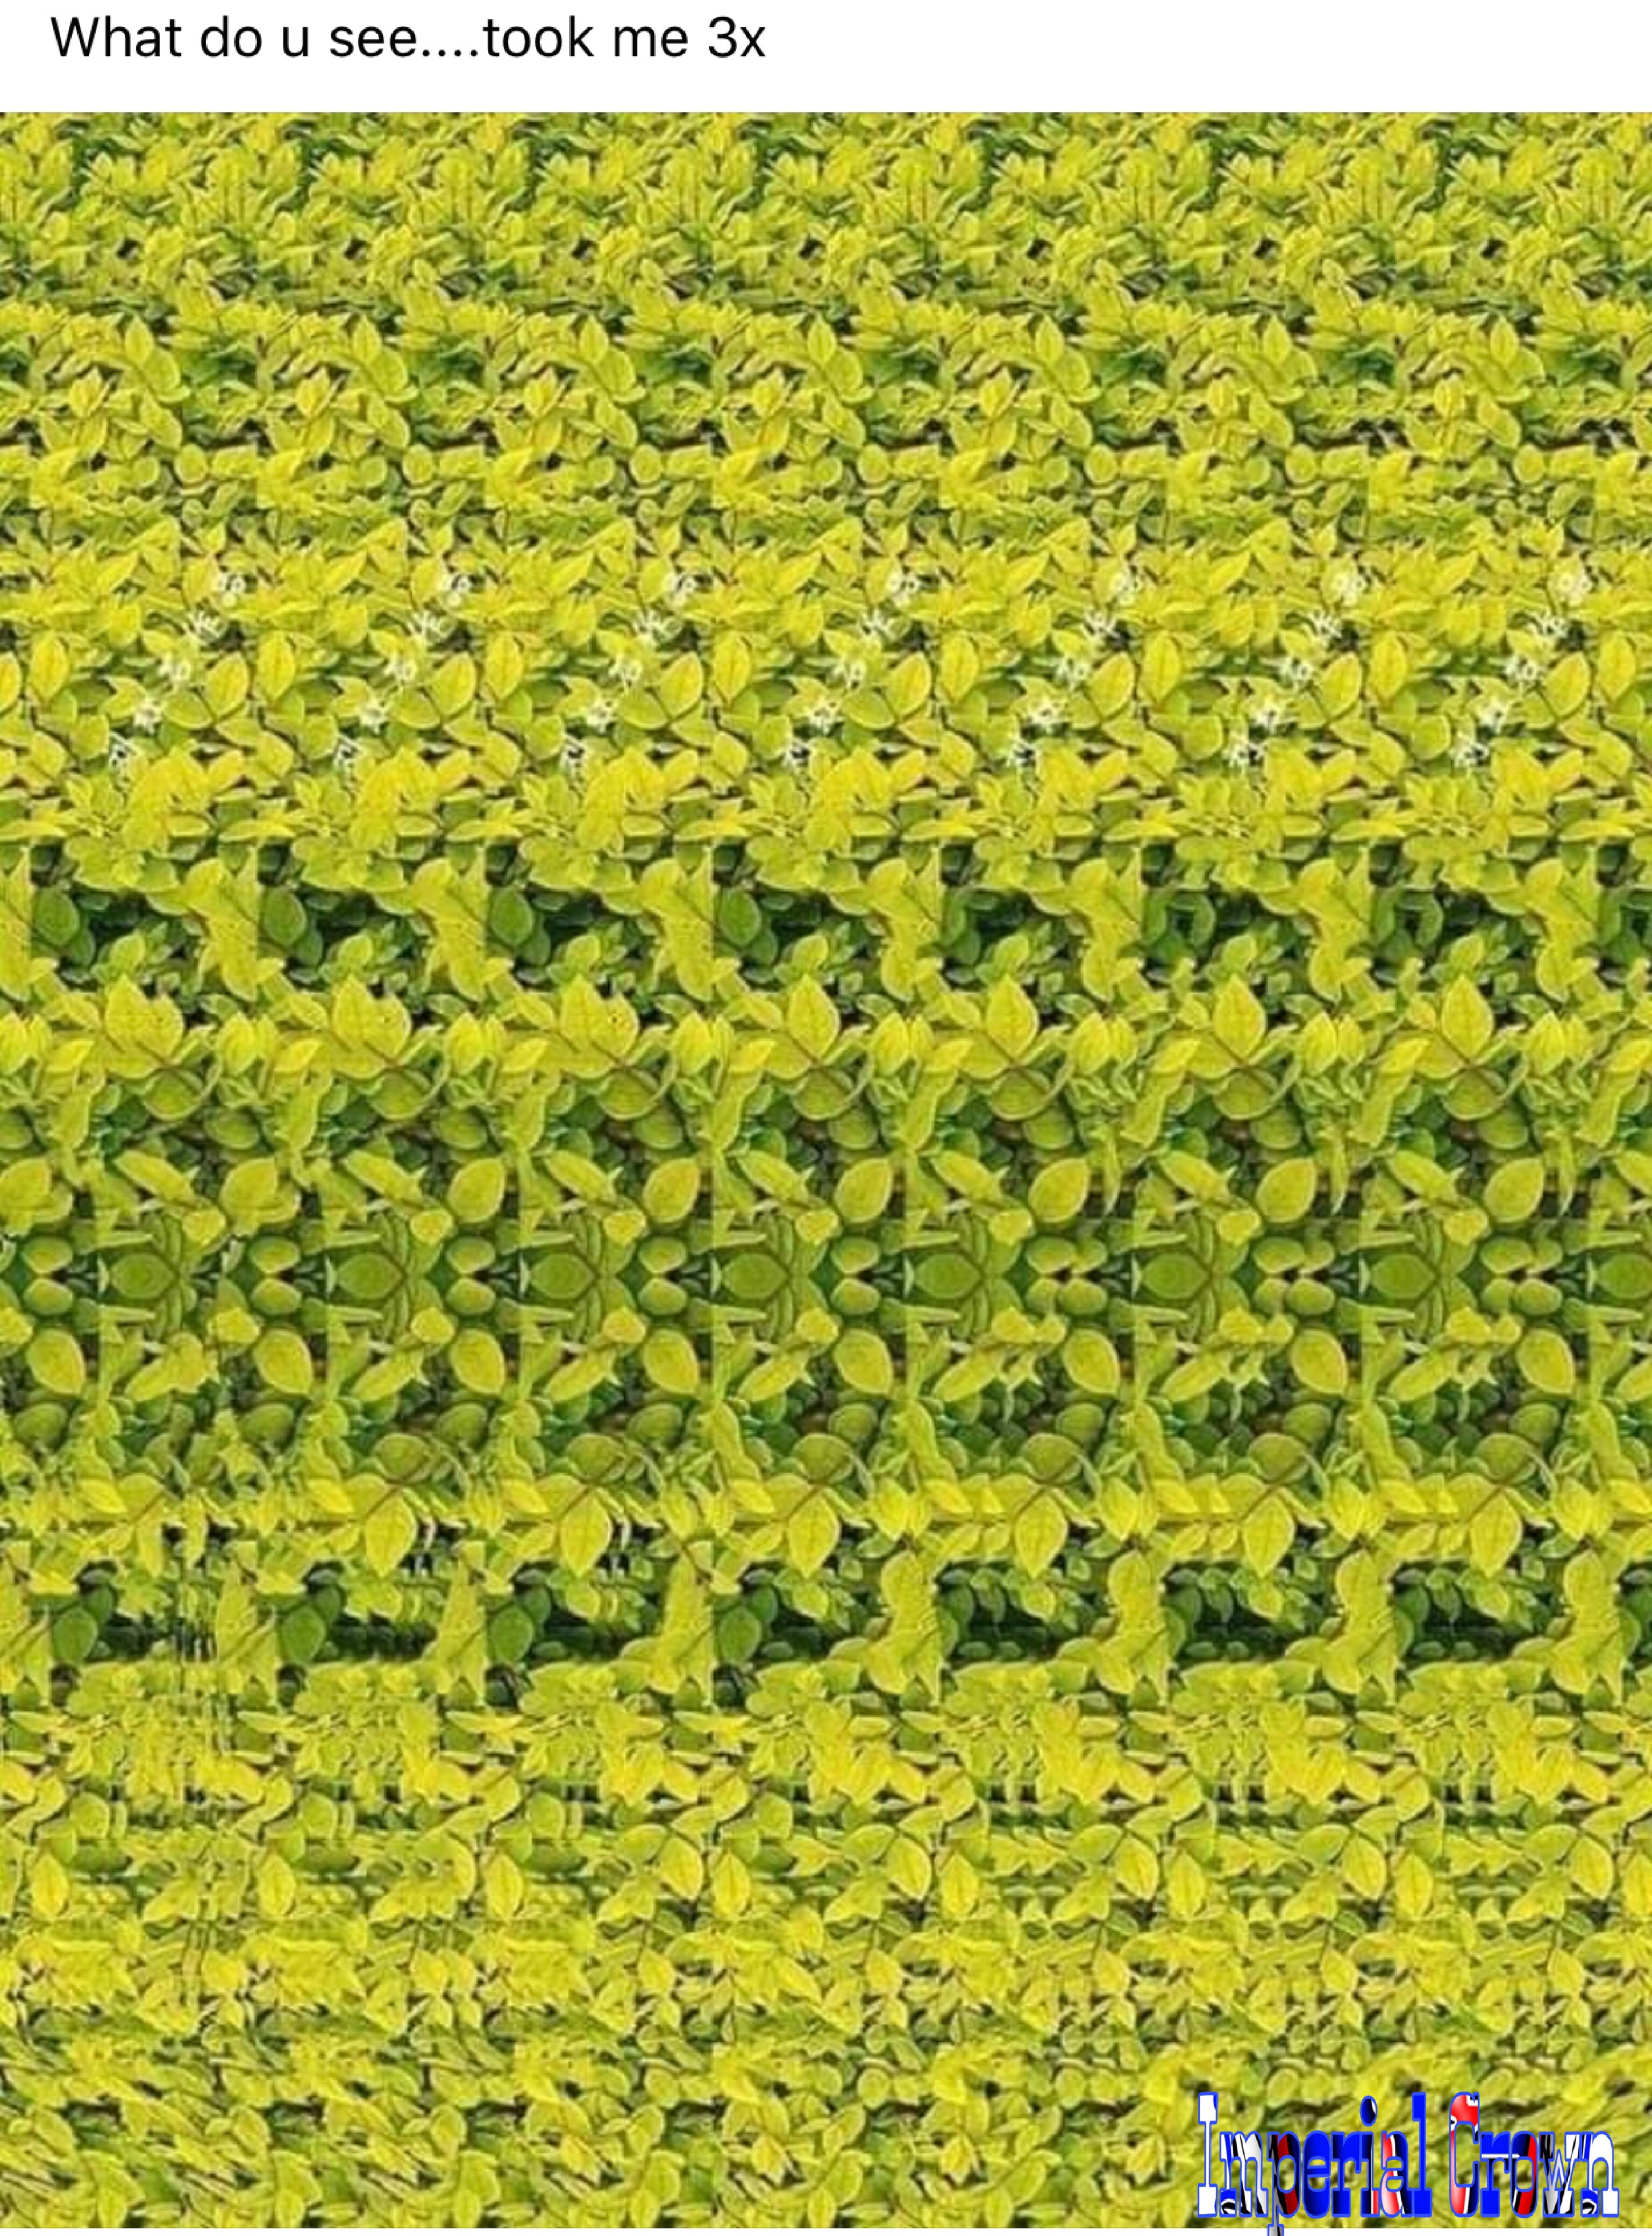 What do you see took me 3x